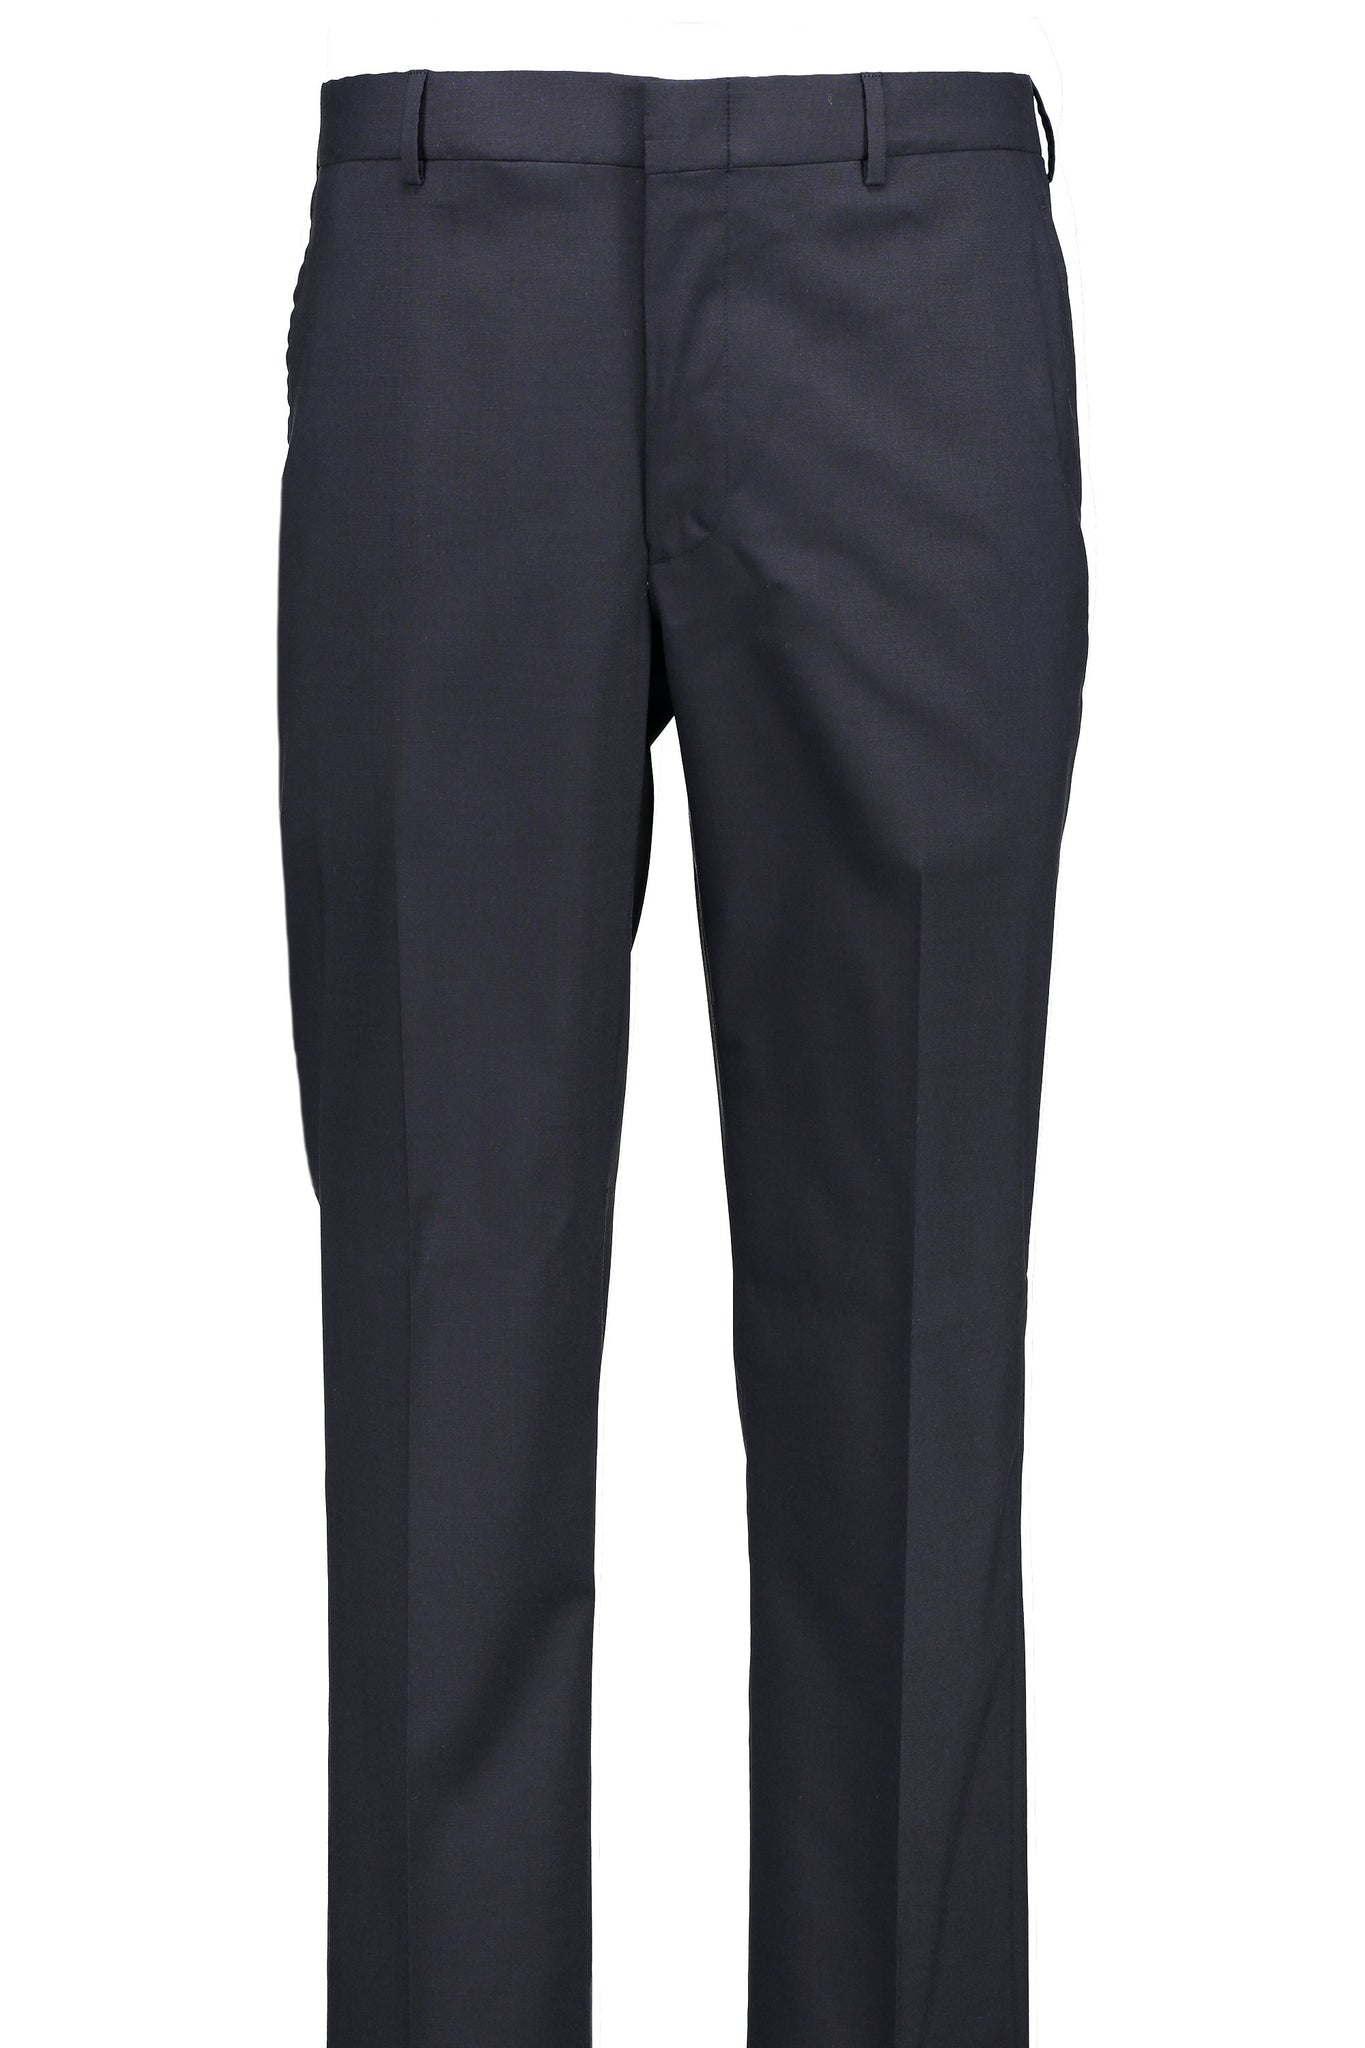 Classic Fit Navy H-Tech Wool Suit Separate Flat Front Pant -  Hardwick.com